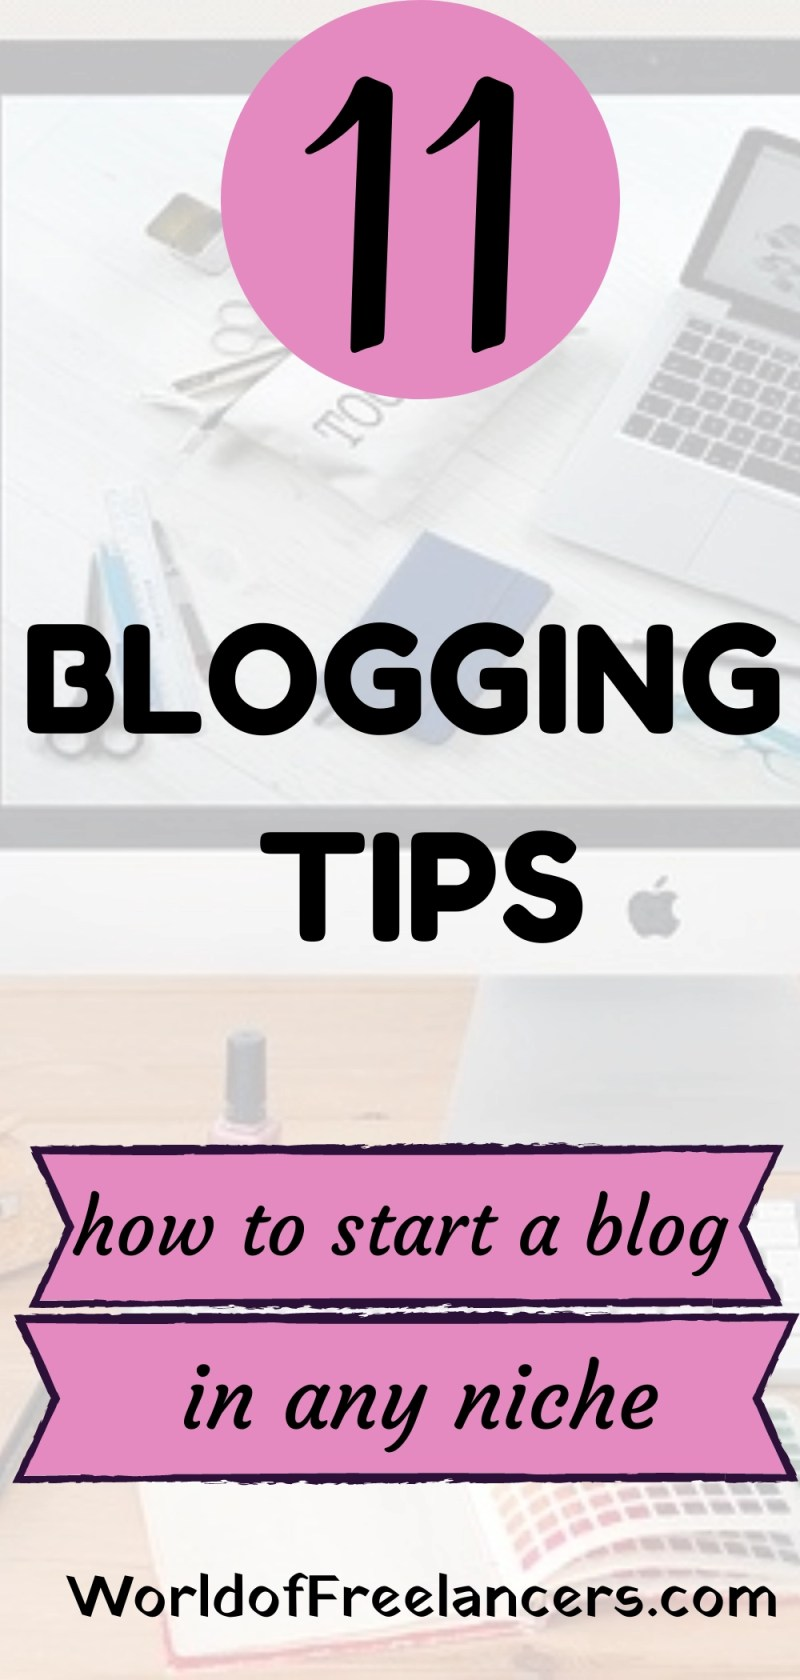 11 blogging tips - how to start a blog in any niche